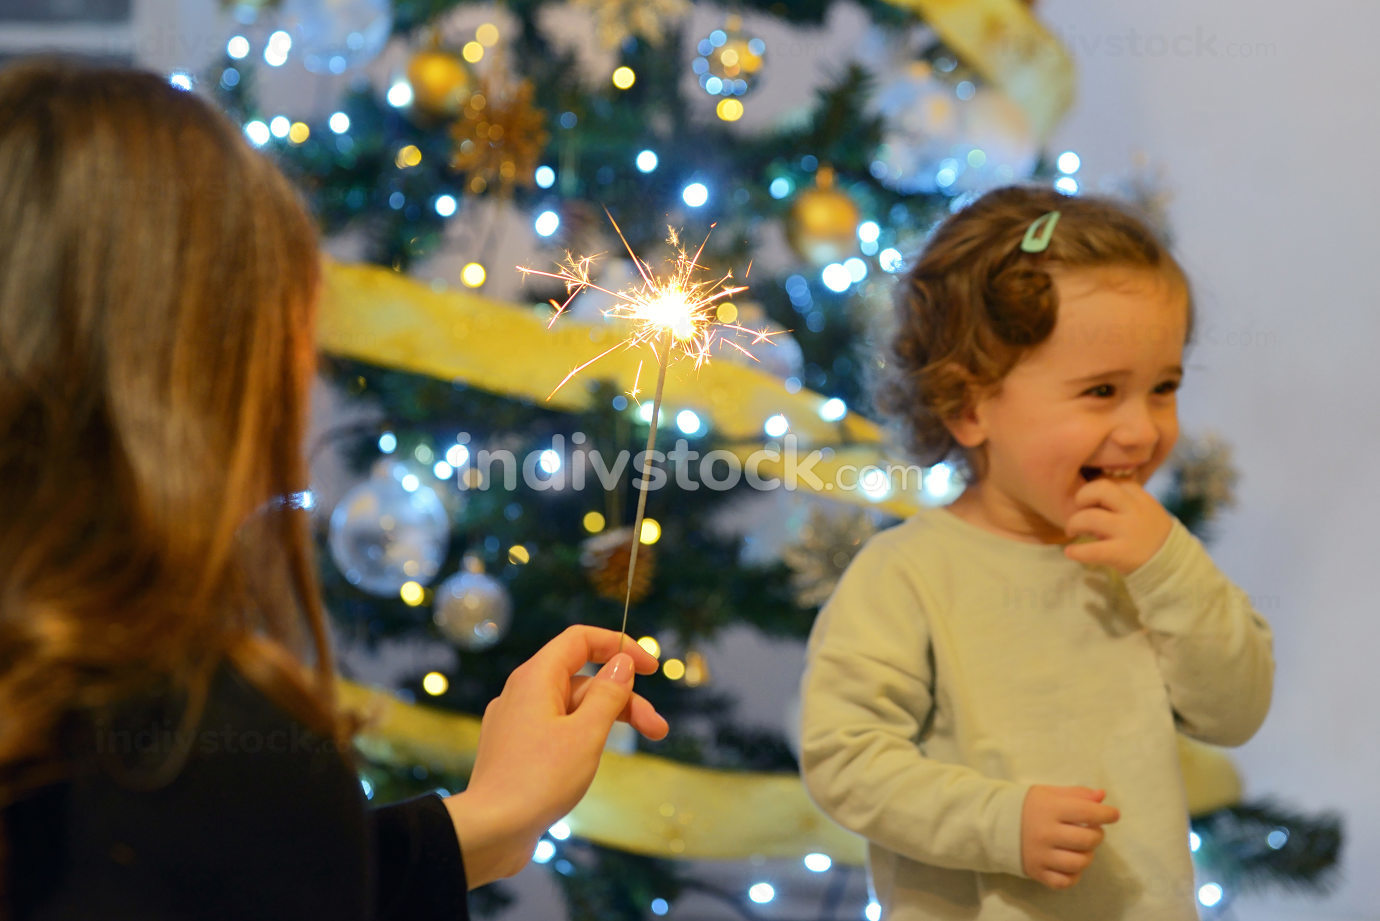 Girls looking at festive fire sparks.